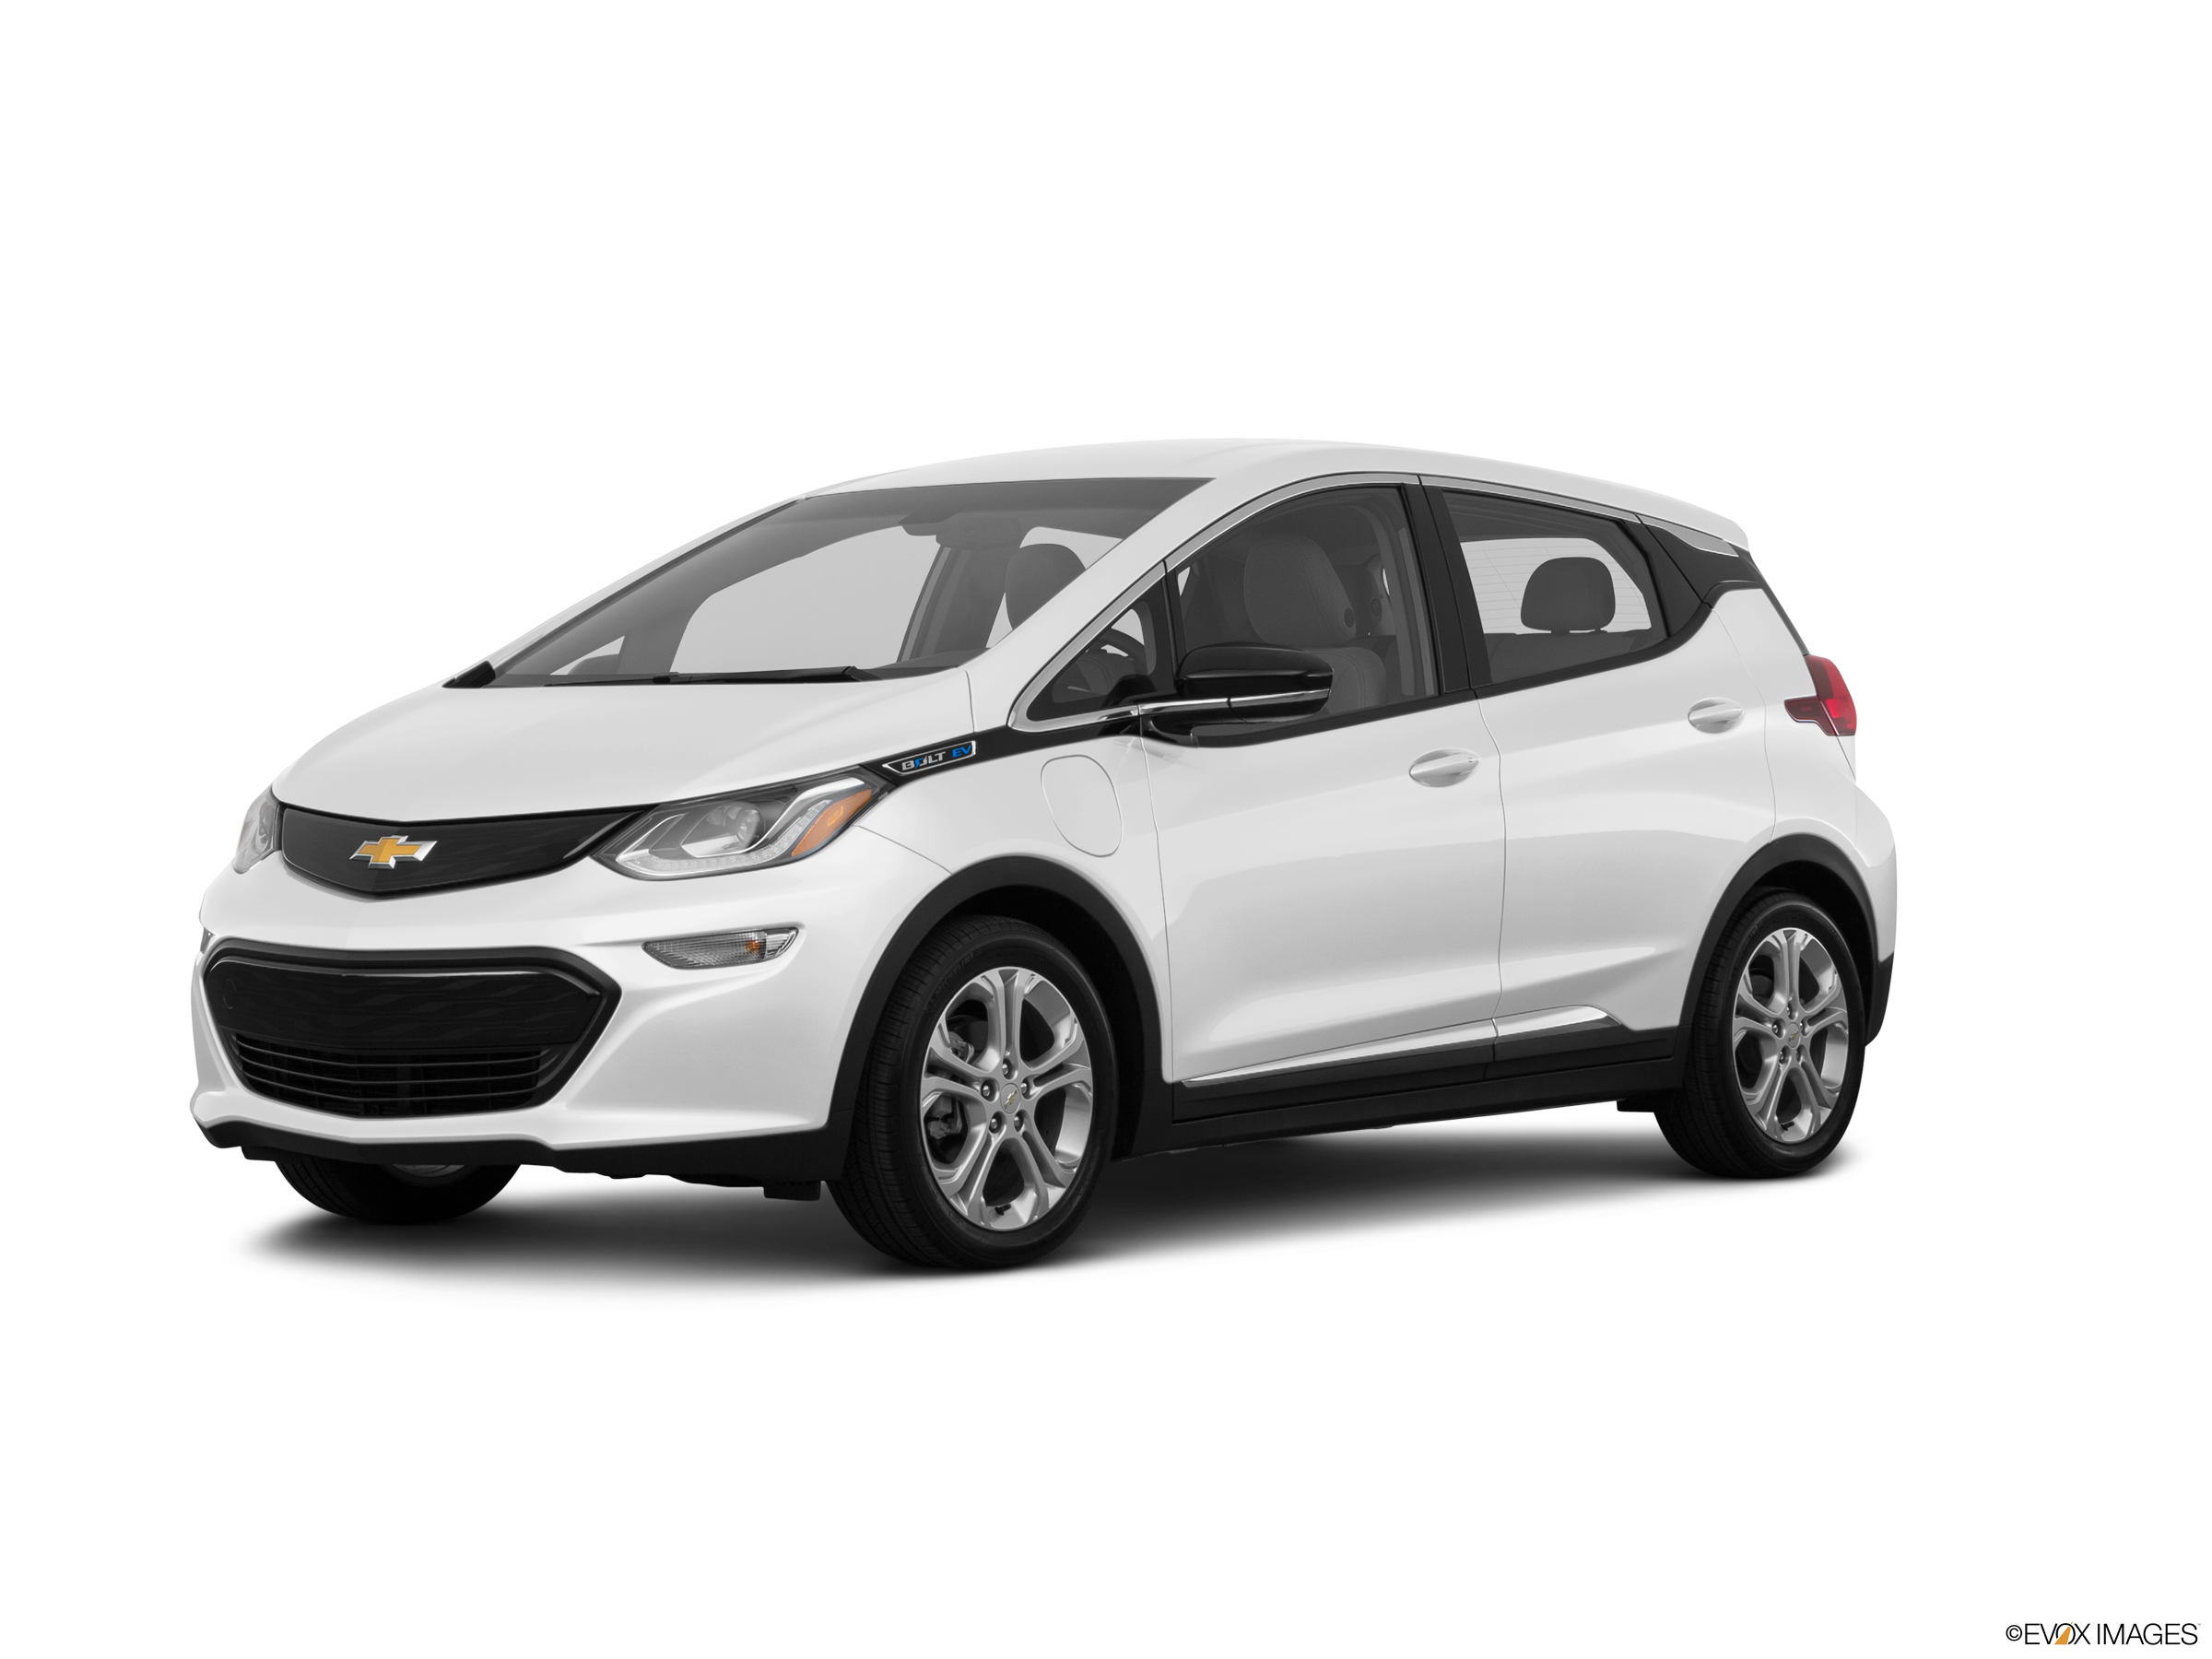 Top Expert Rated Hatchbacks of 2017 - 2017 Chevrolet Bolt EV